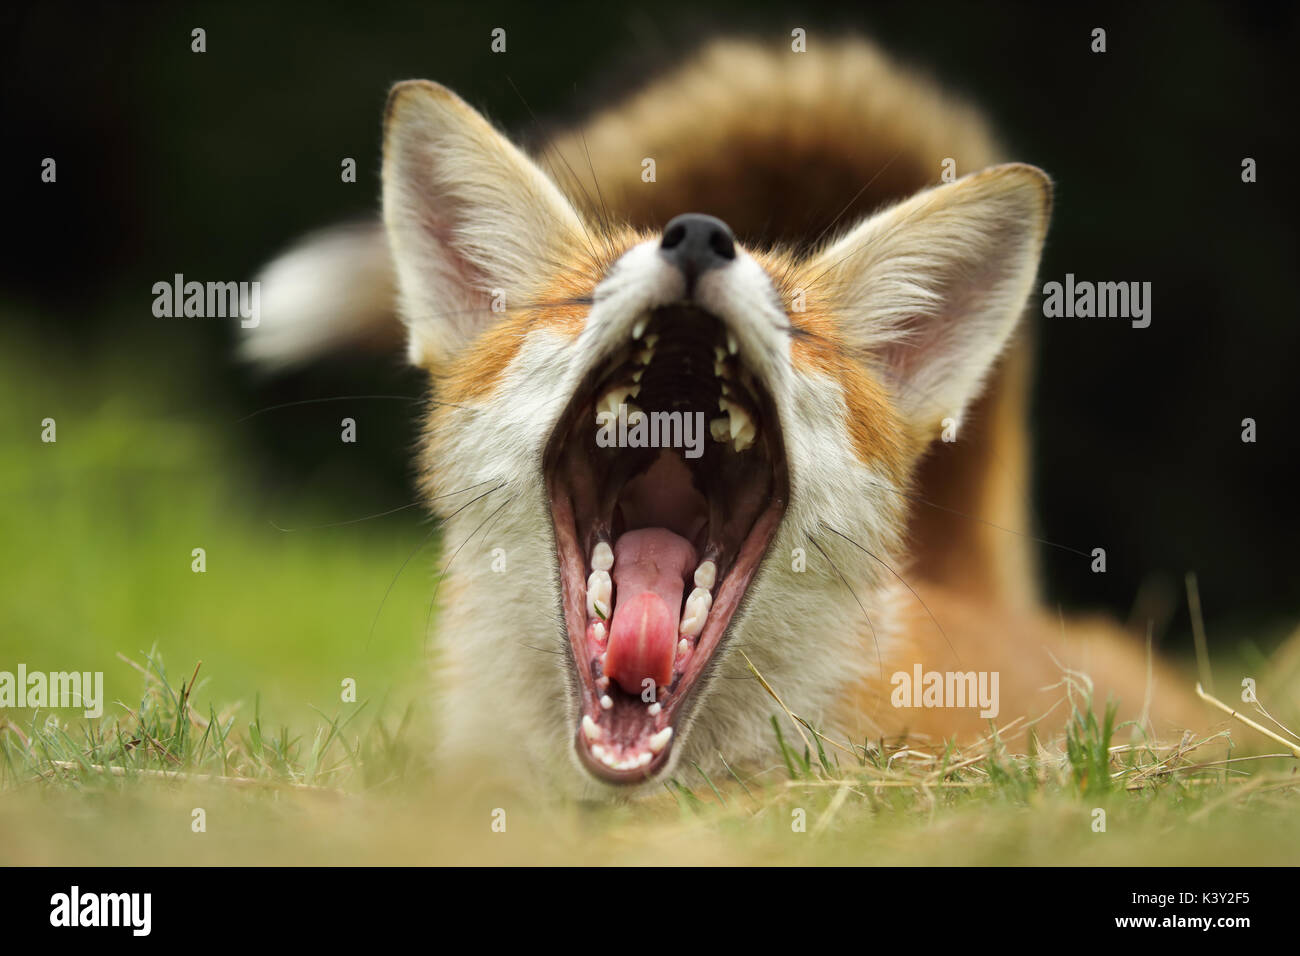 Young fox having a big yawn - Stock Image